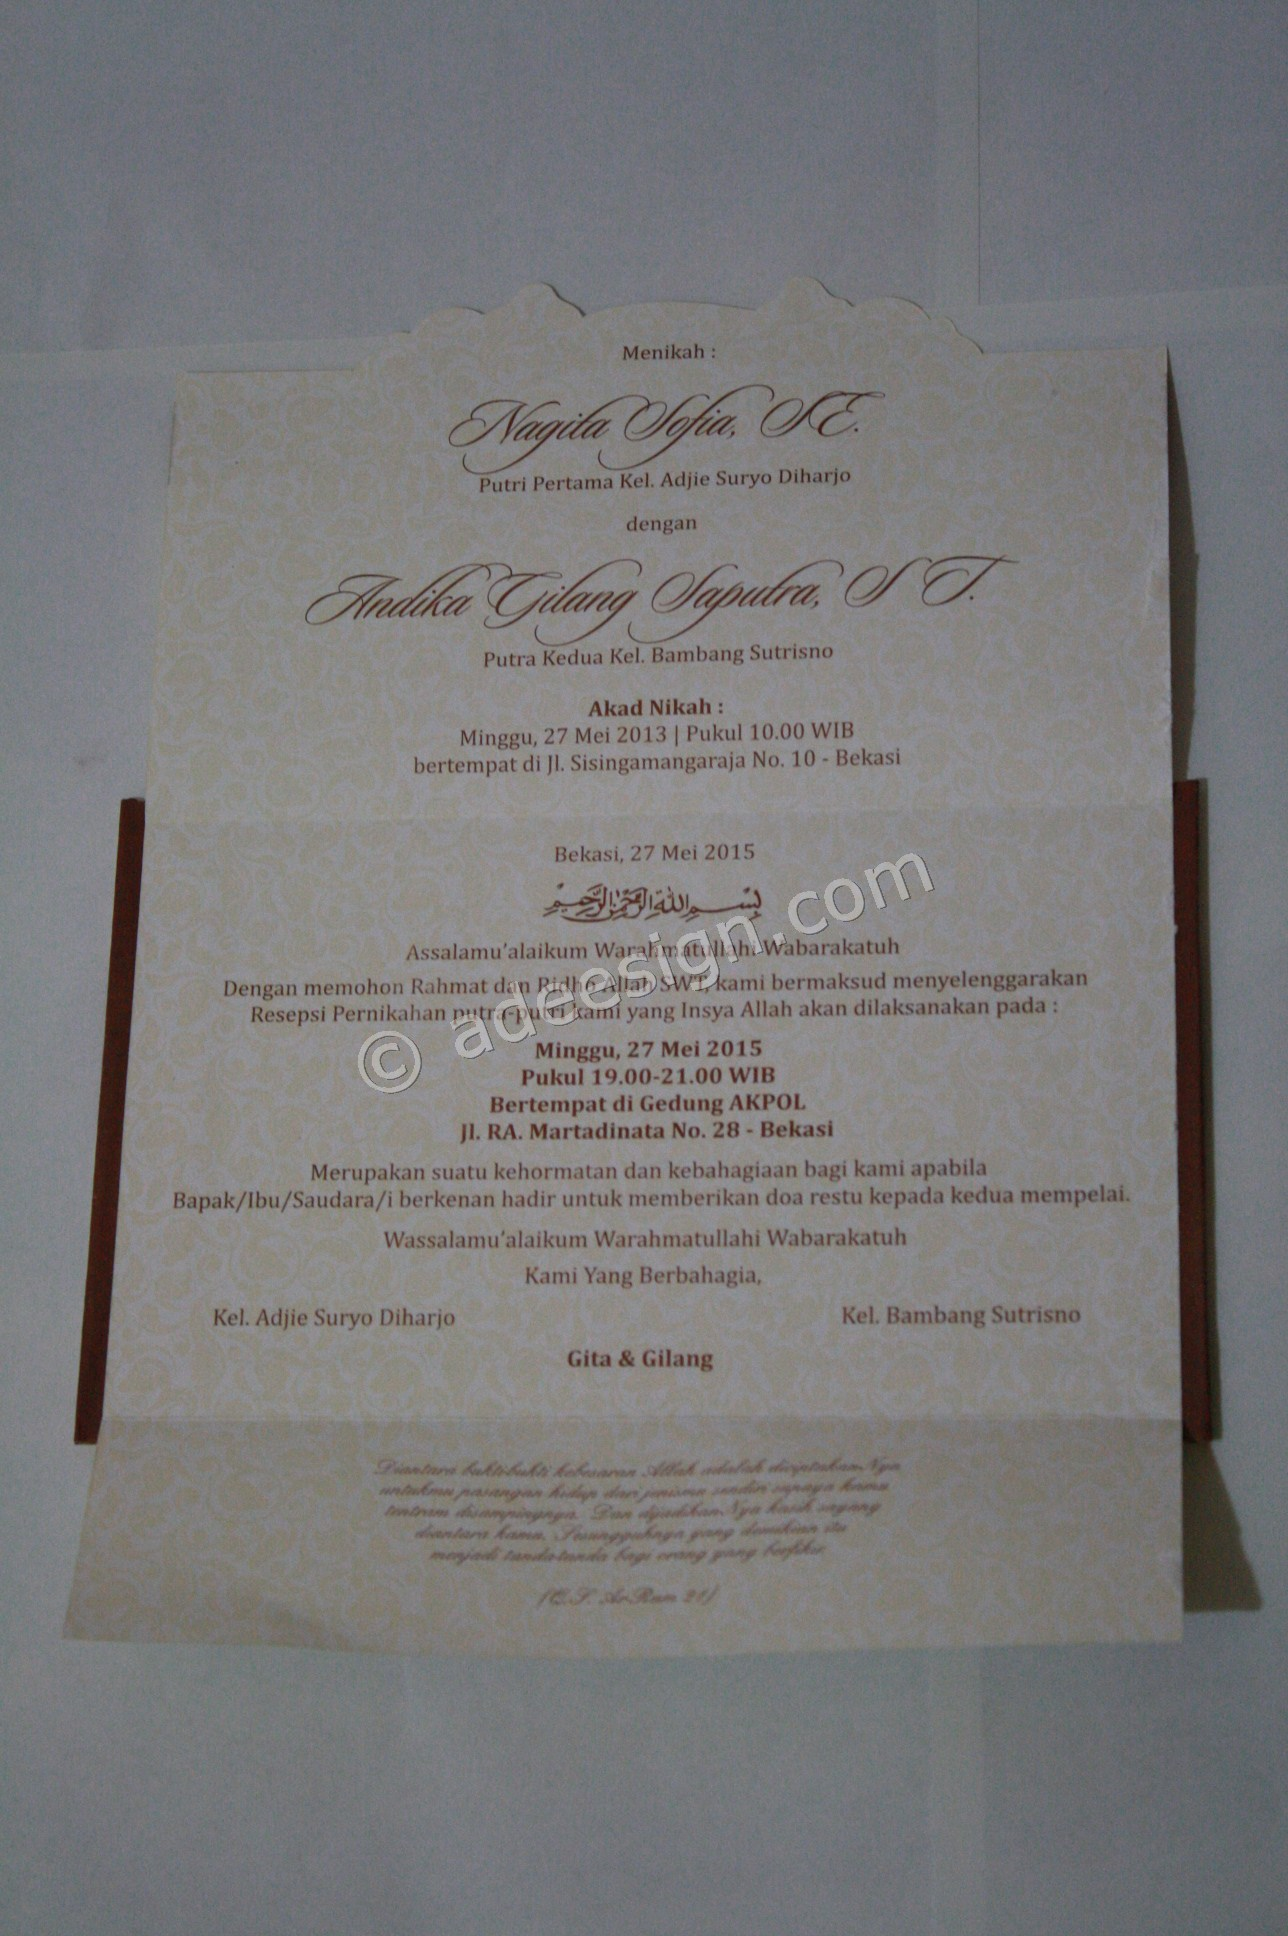 Undangan Pernikahan Semi Hard Cover Gita dan Gilang 2 - Percetakan Wedding Invitations Simple dan Elegan di Sawunggaling